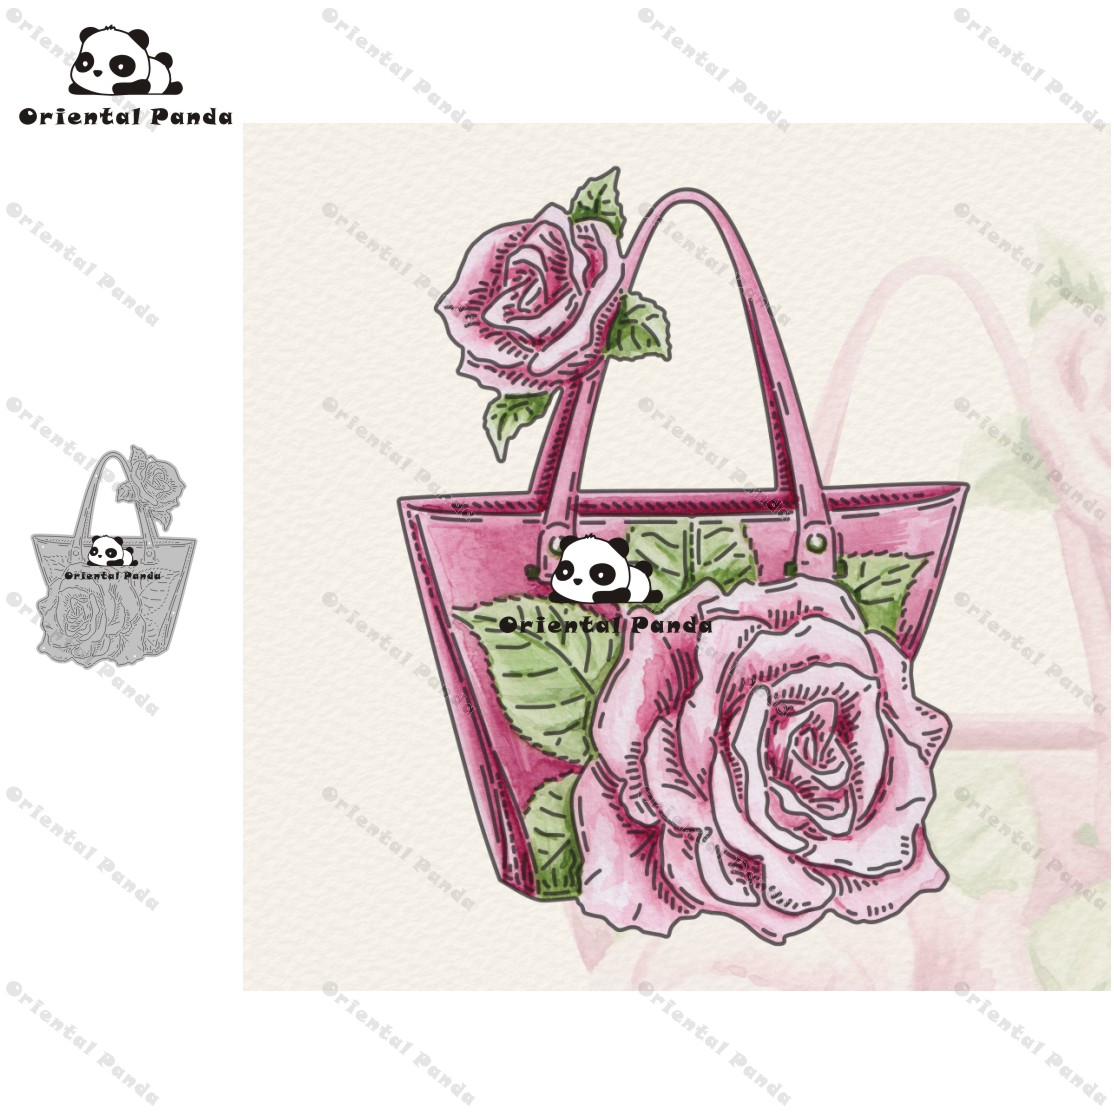 New Dies 2020 Rose Handbag Metal Cutting Dies Diy Dies Photo Album  Cutting Dies Scrapbooking Stencil Die Cuts Card Making